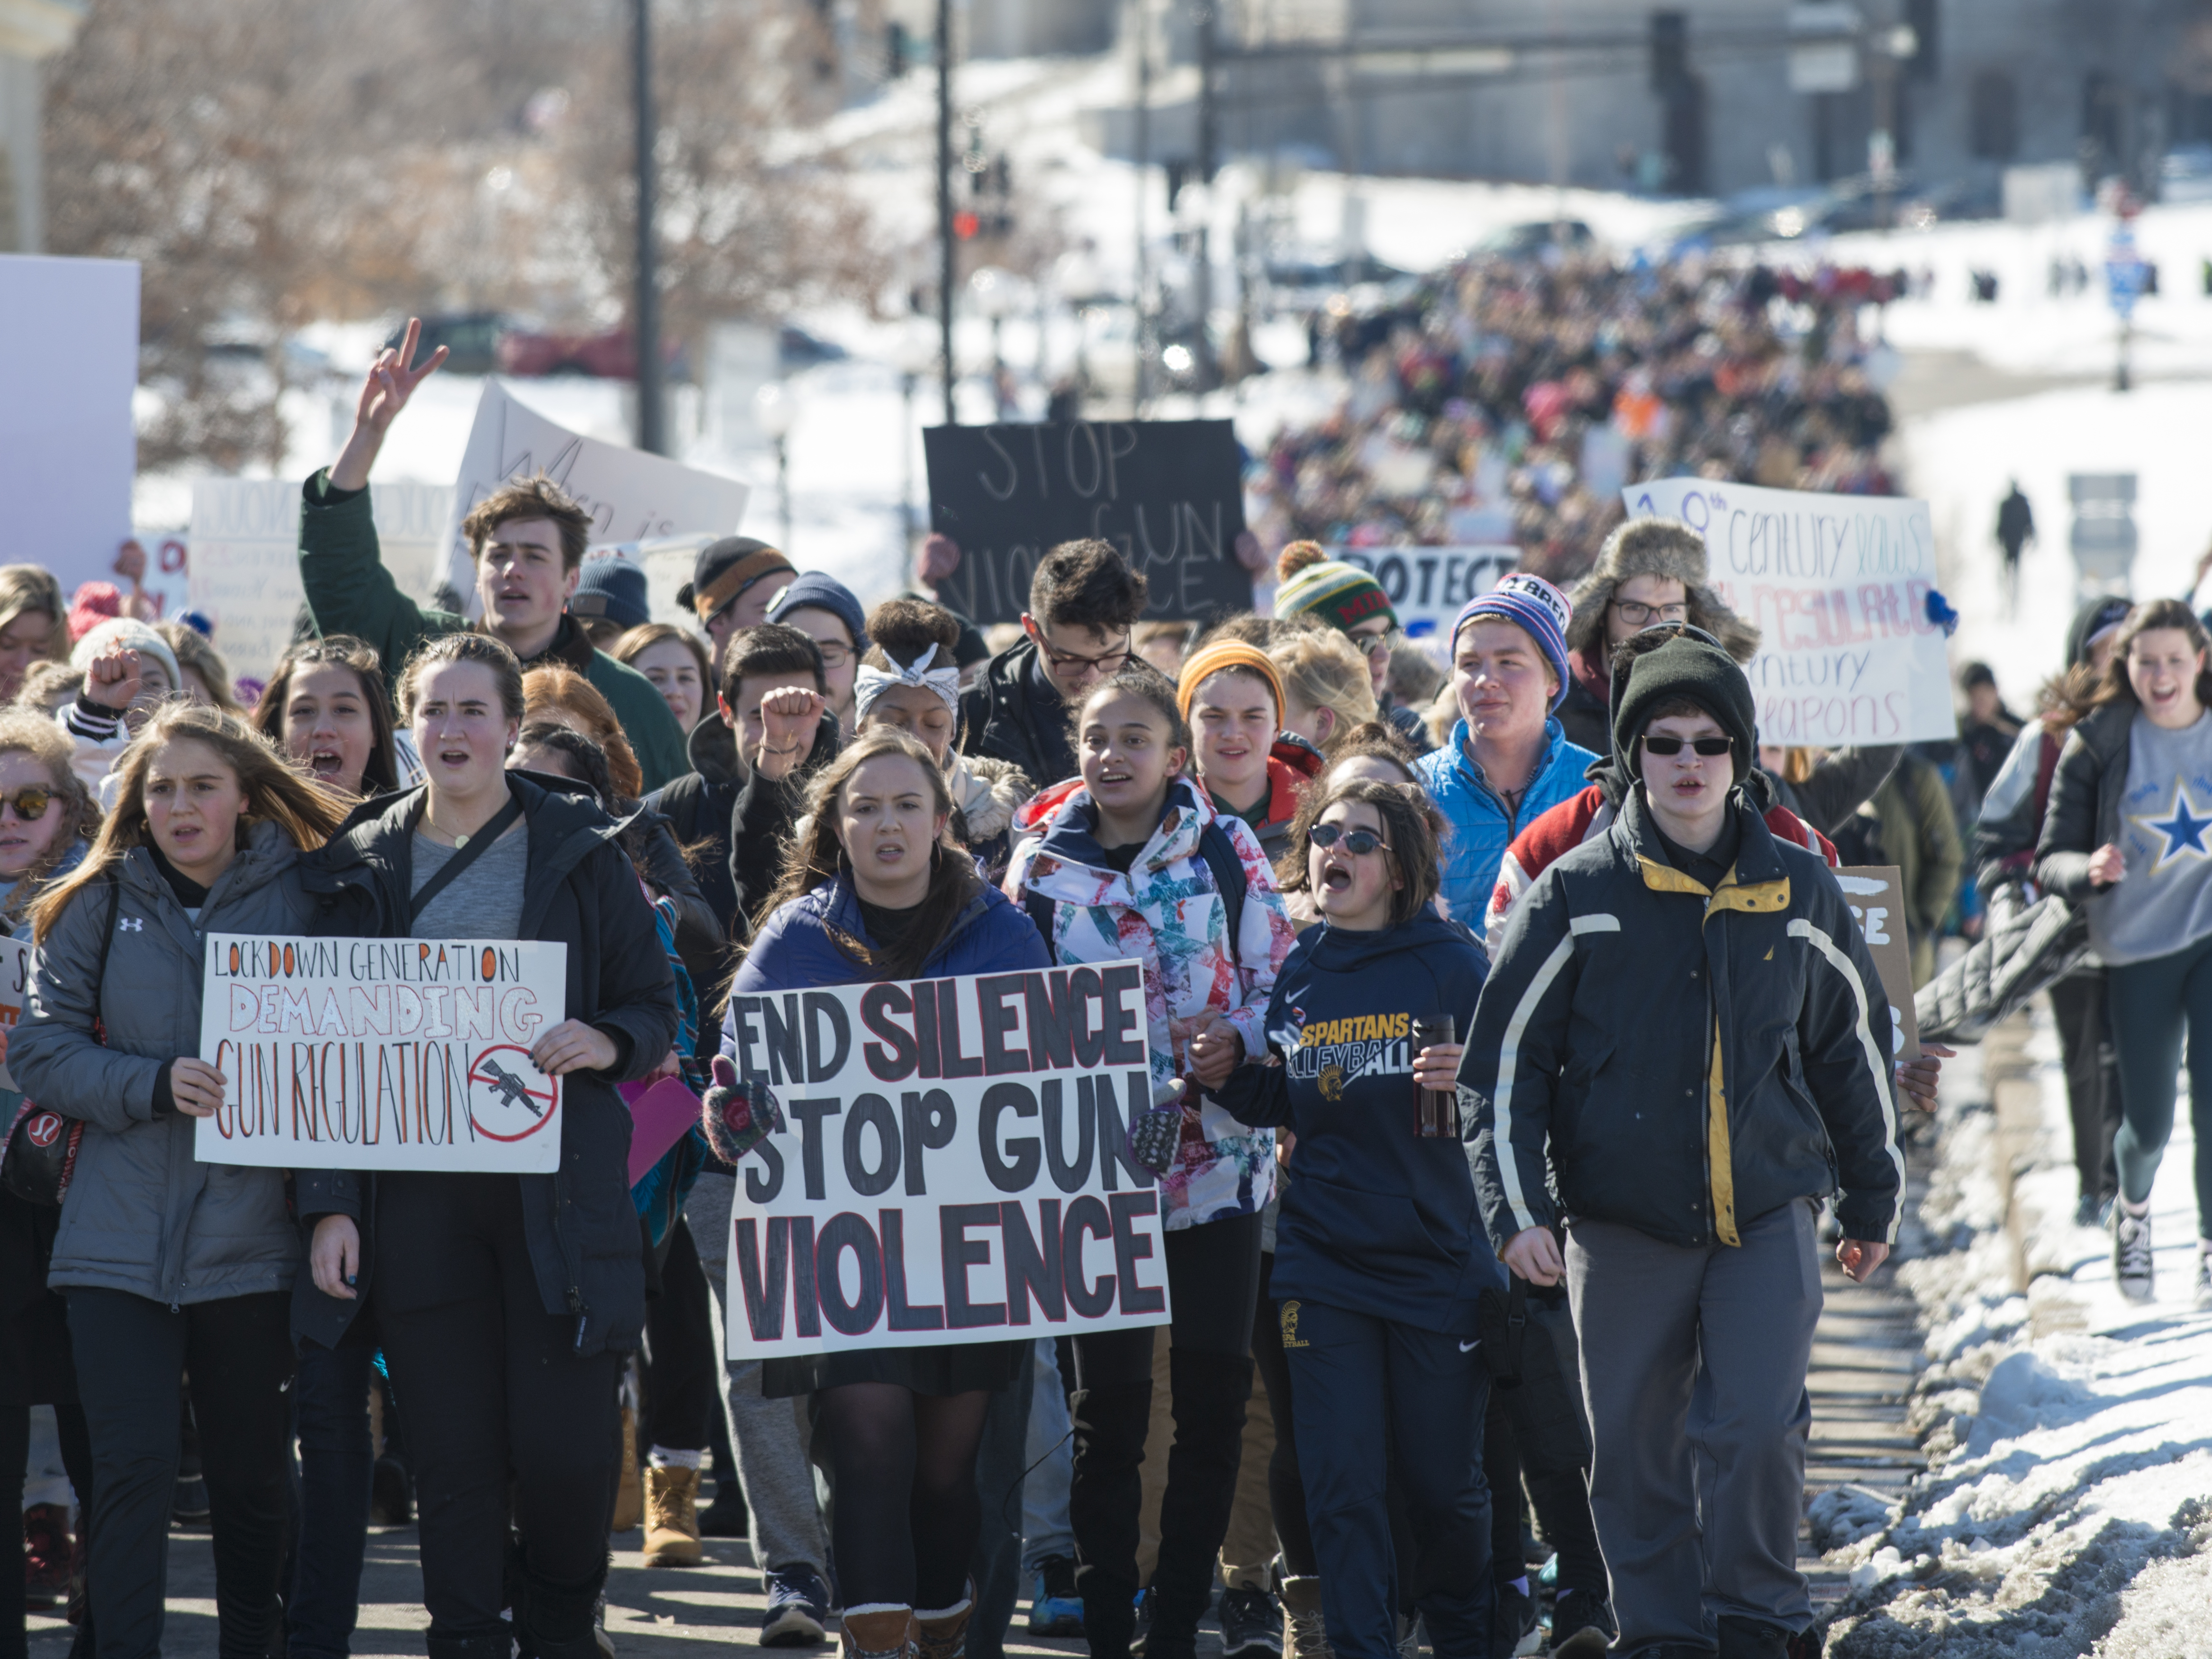 March For Our Lives: What It Is & Why It Matters